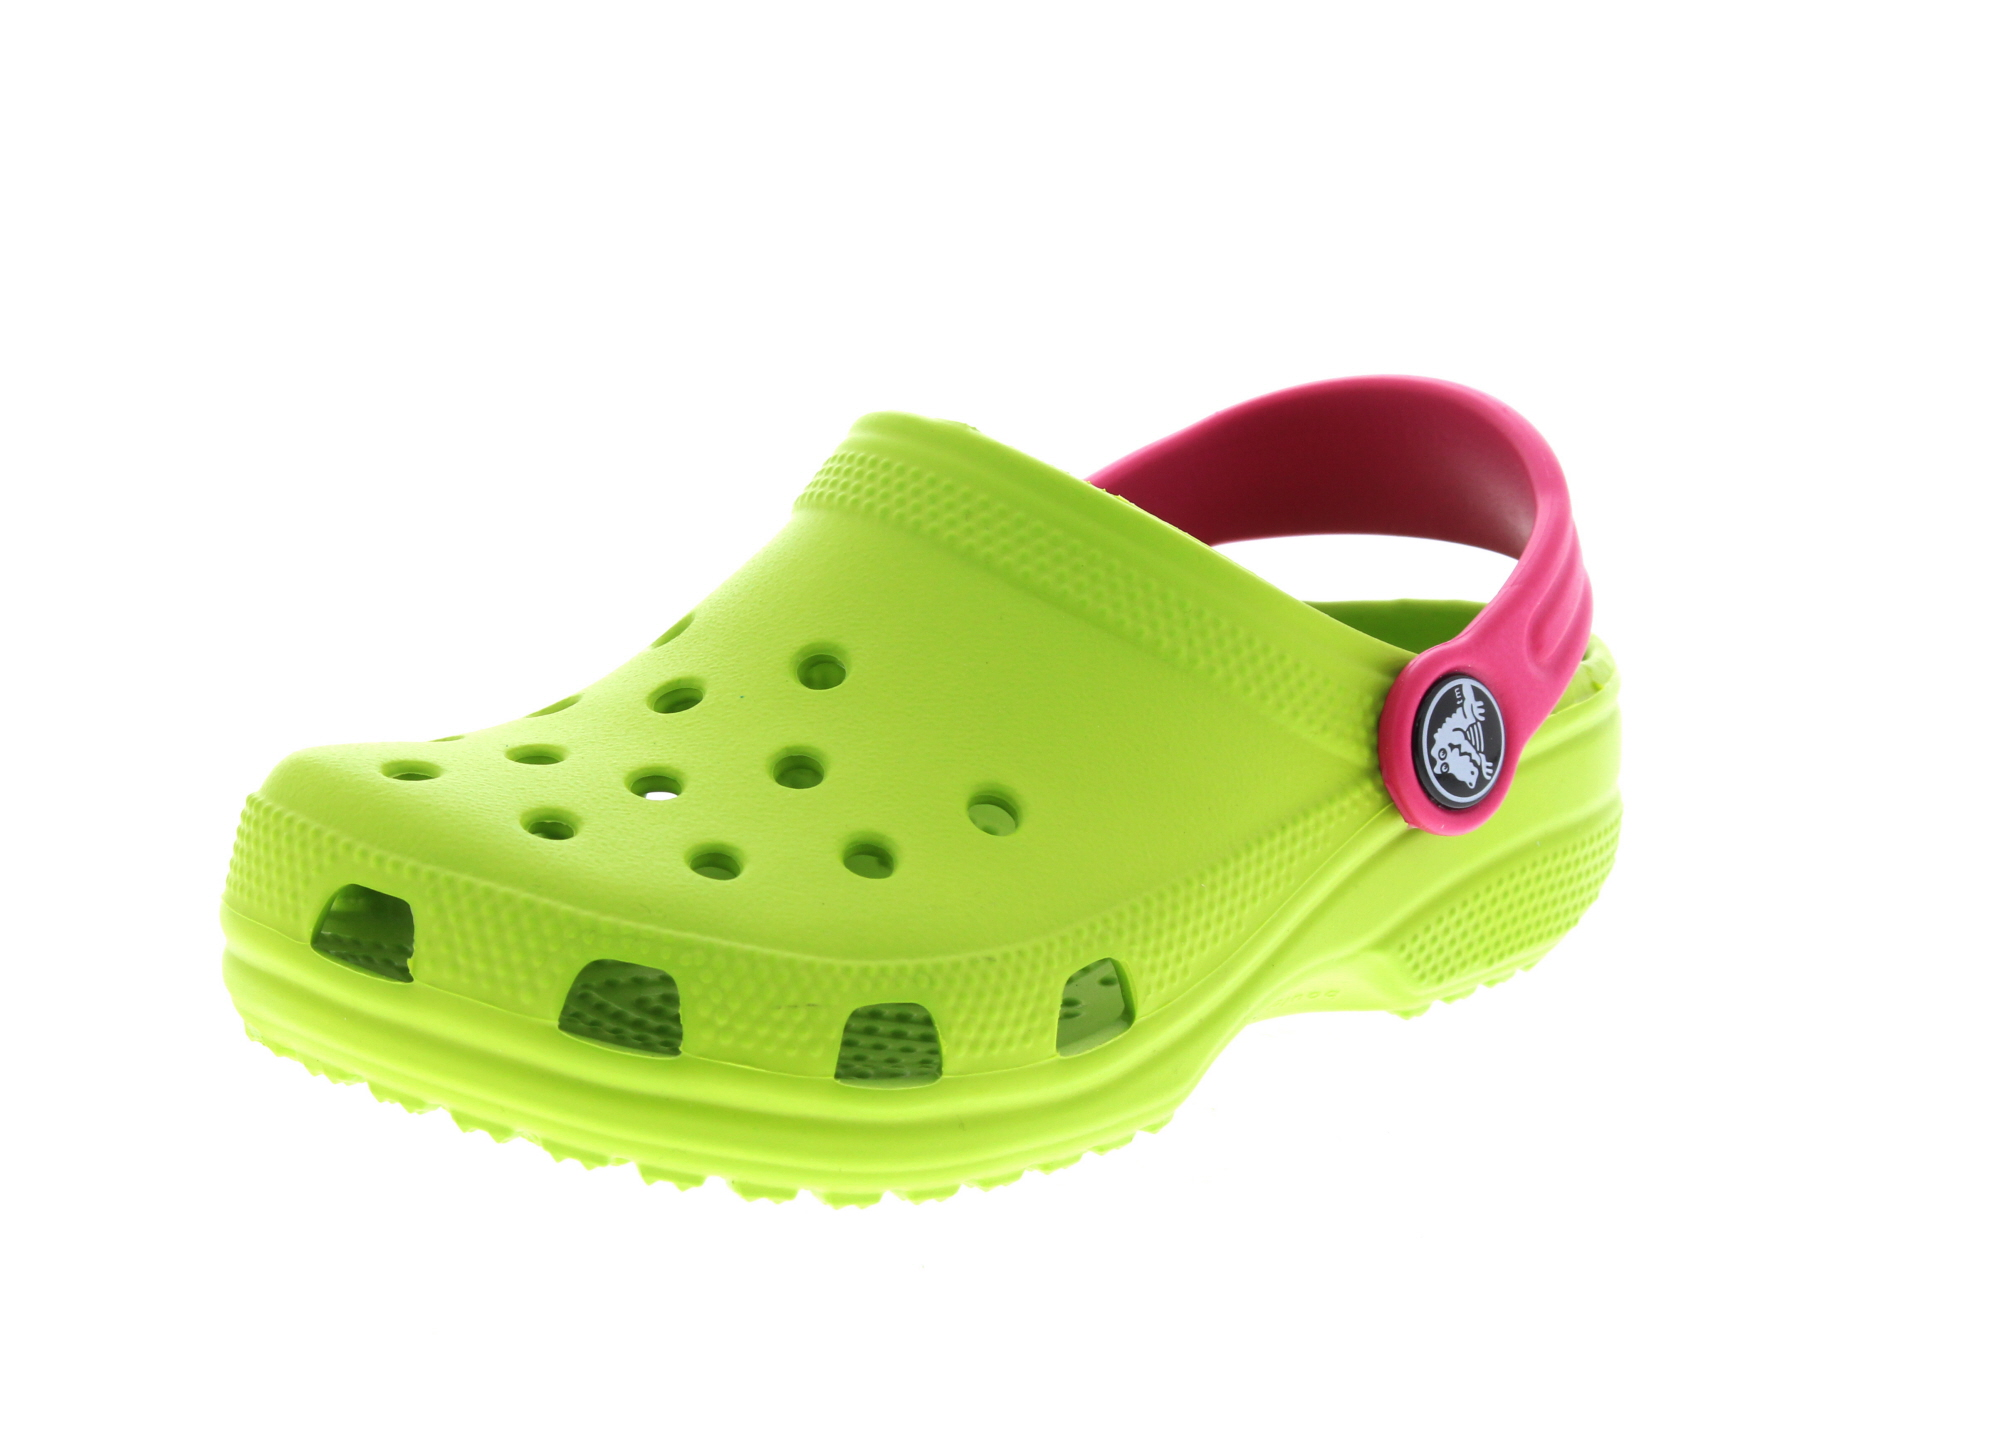 CROCS Kinderschuhe - CLASSIC KIDS volt green raspberry_0